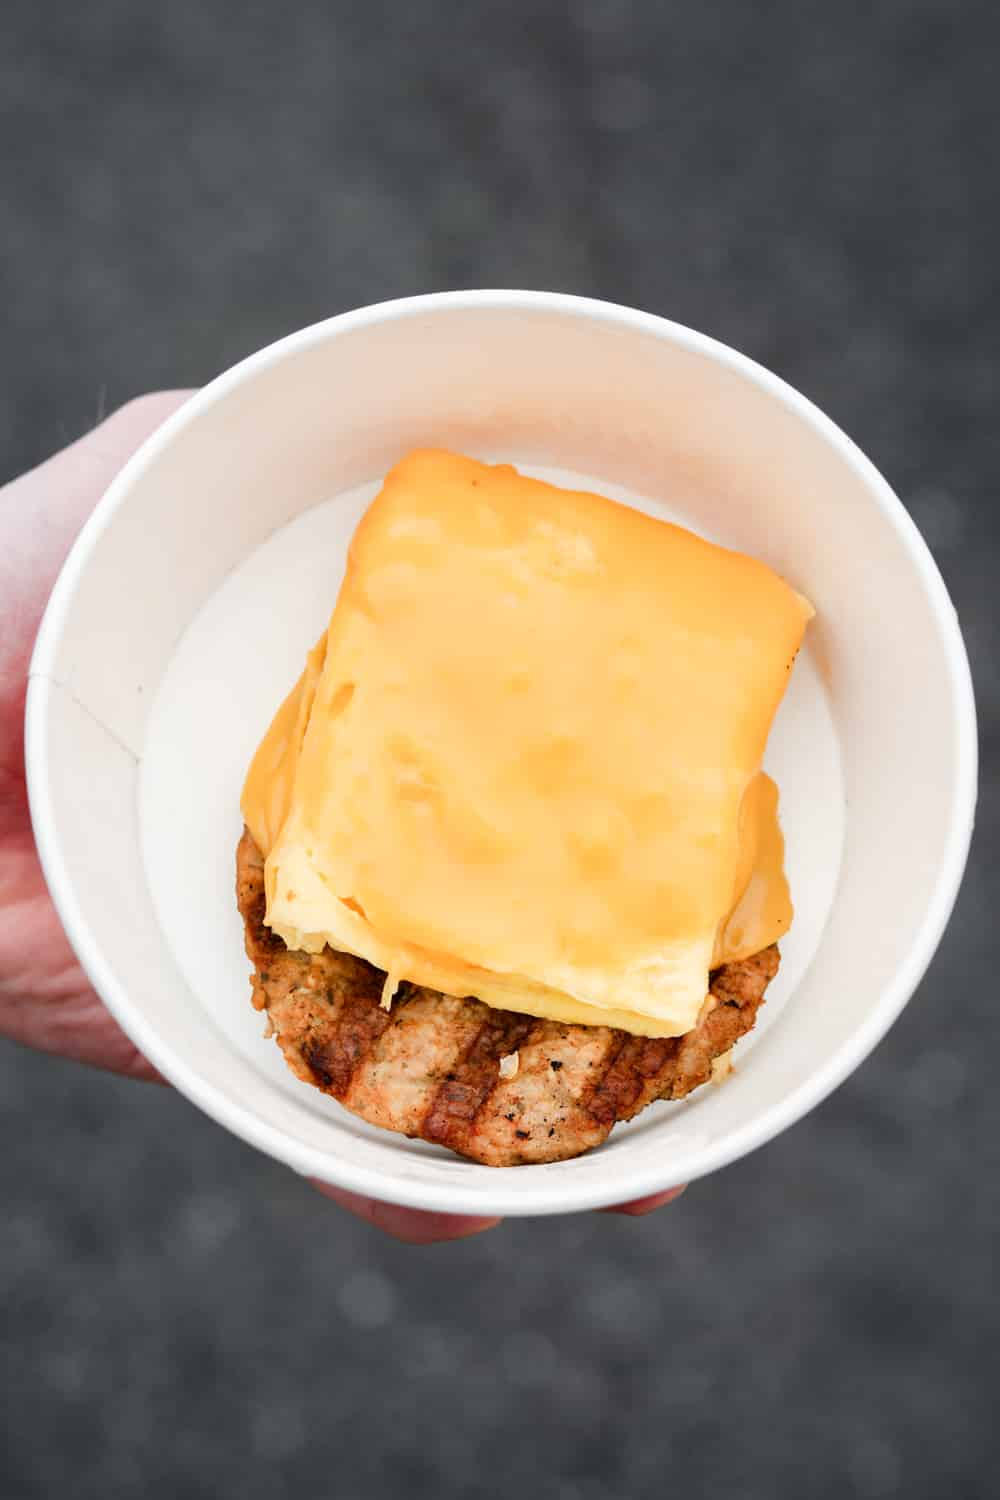 A hand holding a bowl filled with a sausage patty and egg on top and American cheese on the egg.